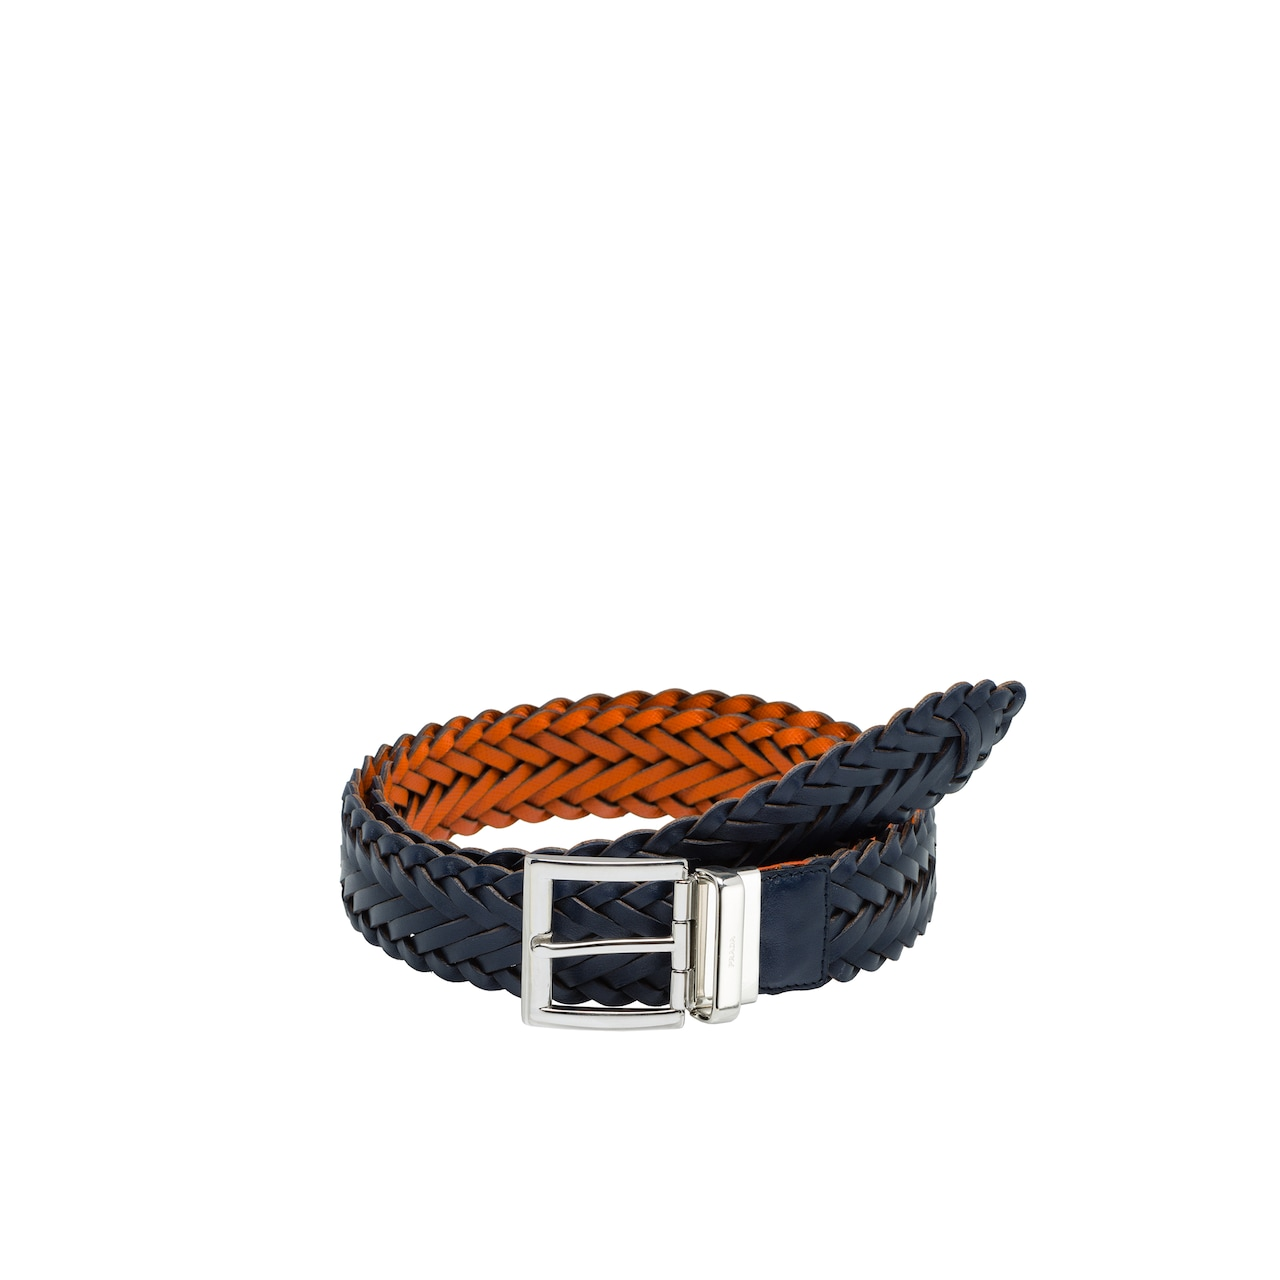 Reversible Saffiano leather and leather belt